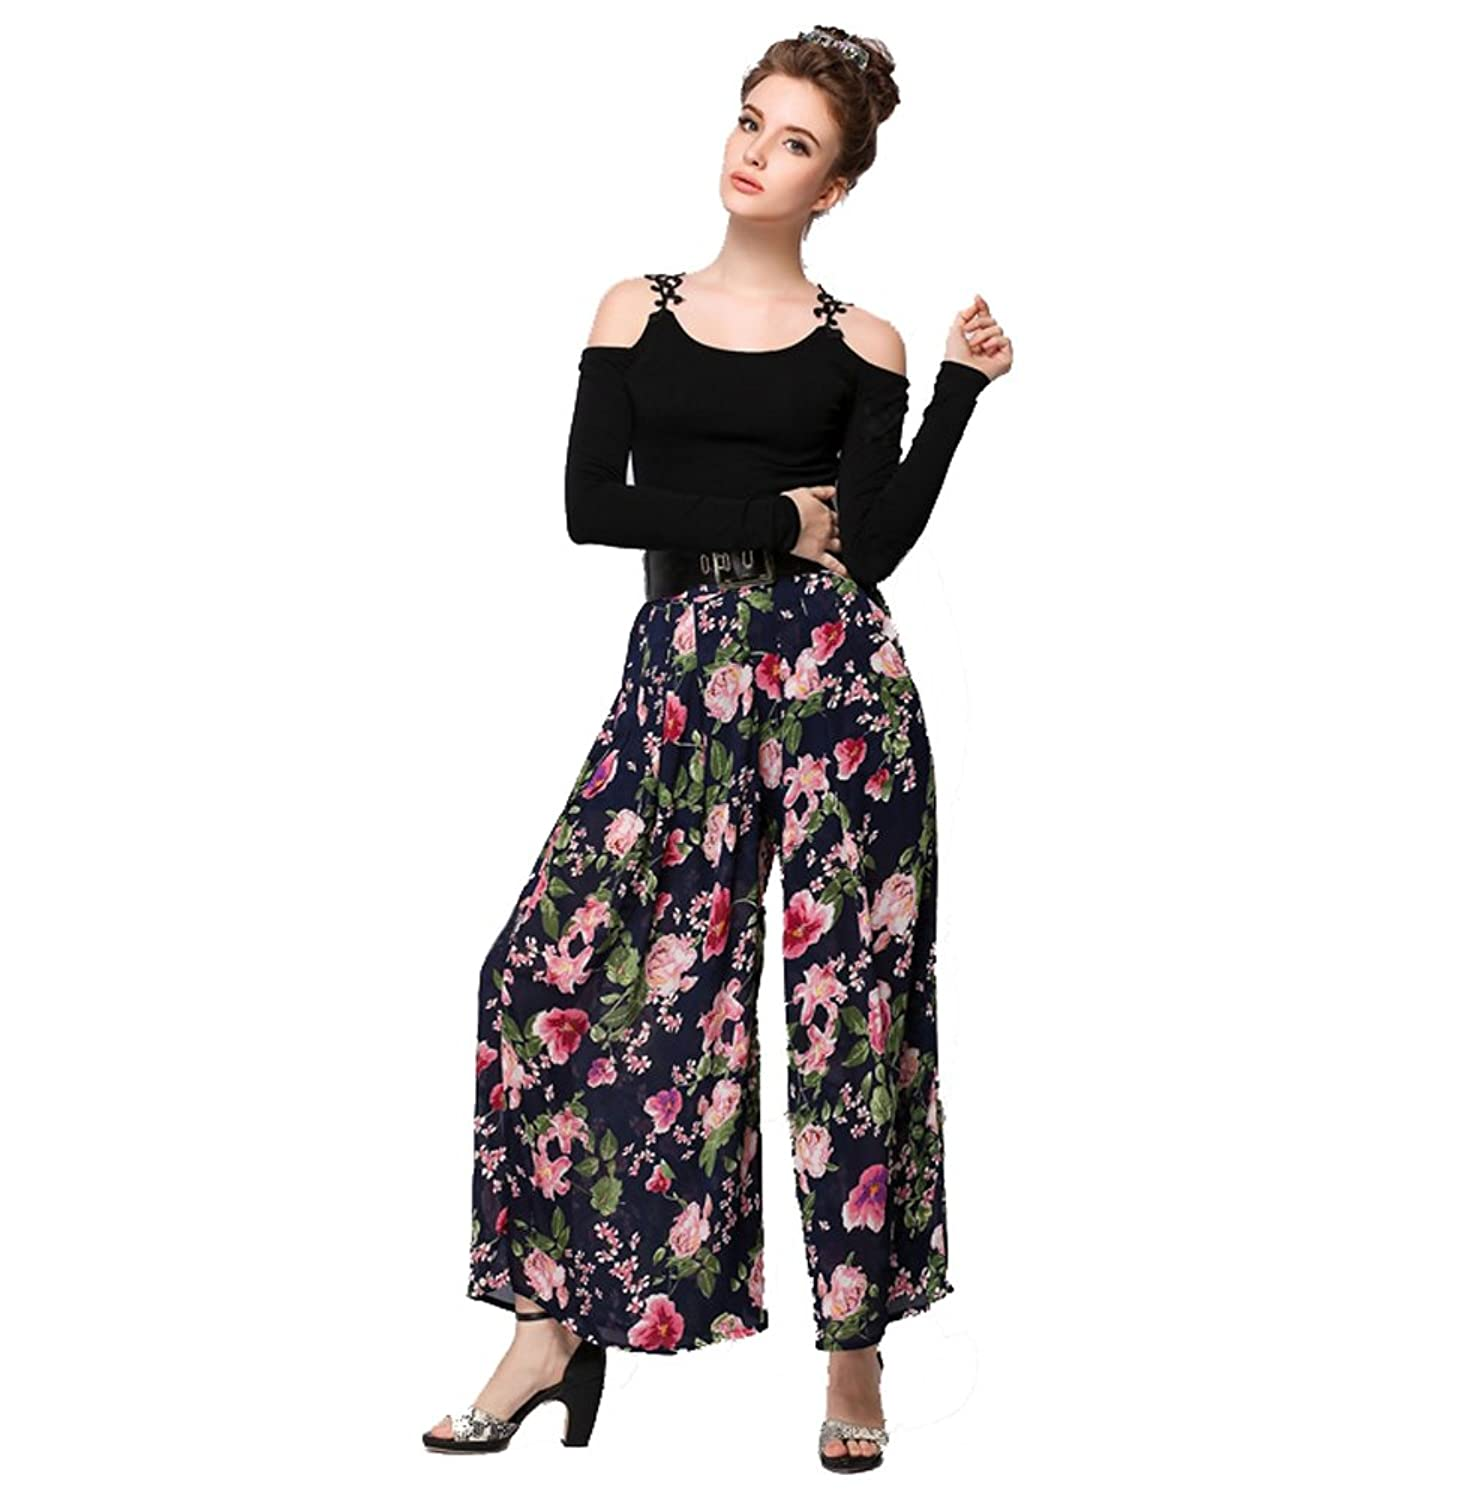 HOLDWELL's Women's Thin Floral High Waist Fashion Wide Leg Pants with Belt